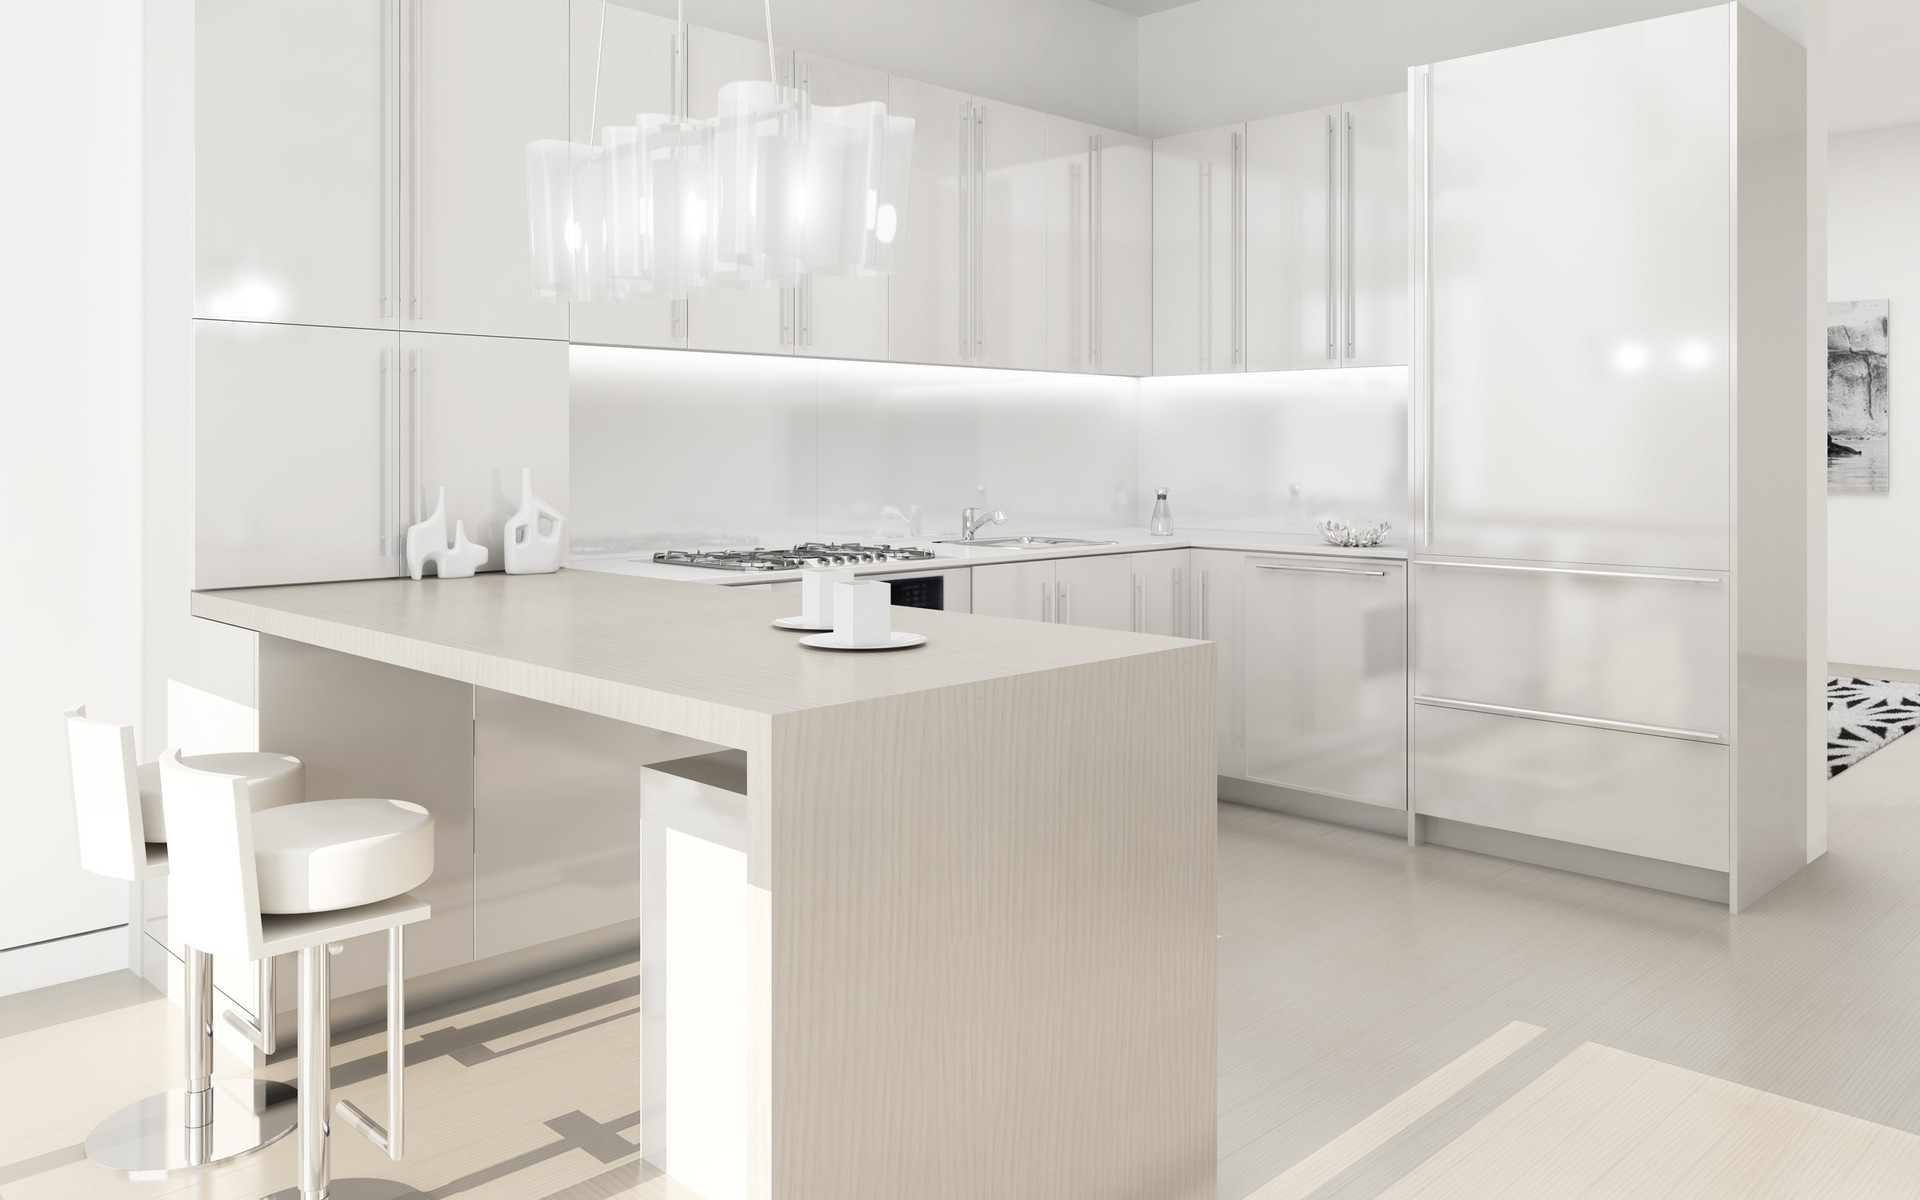 interior_snow-white_kitchen_032632_